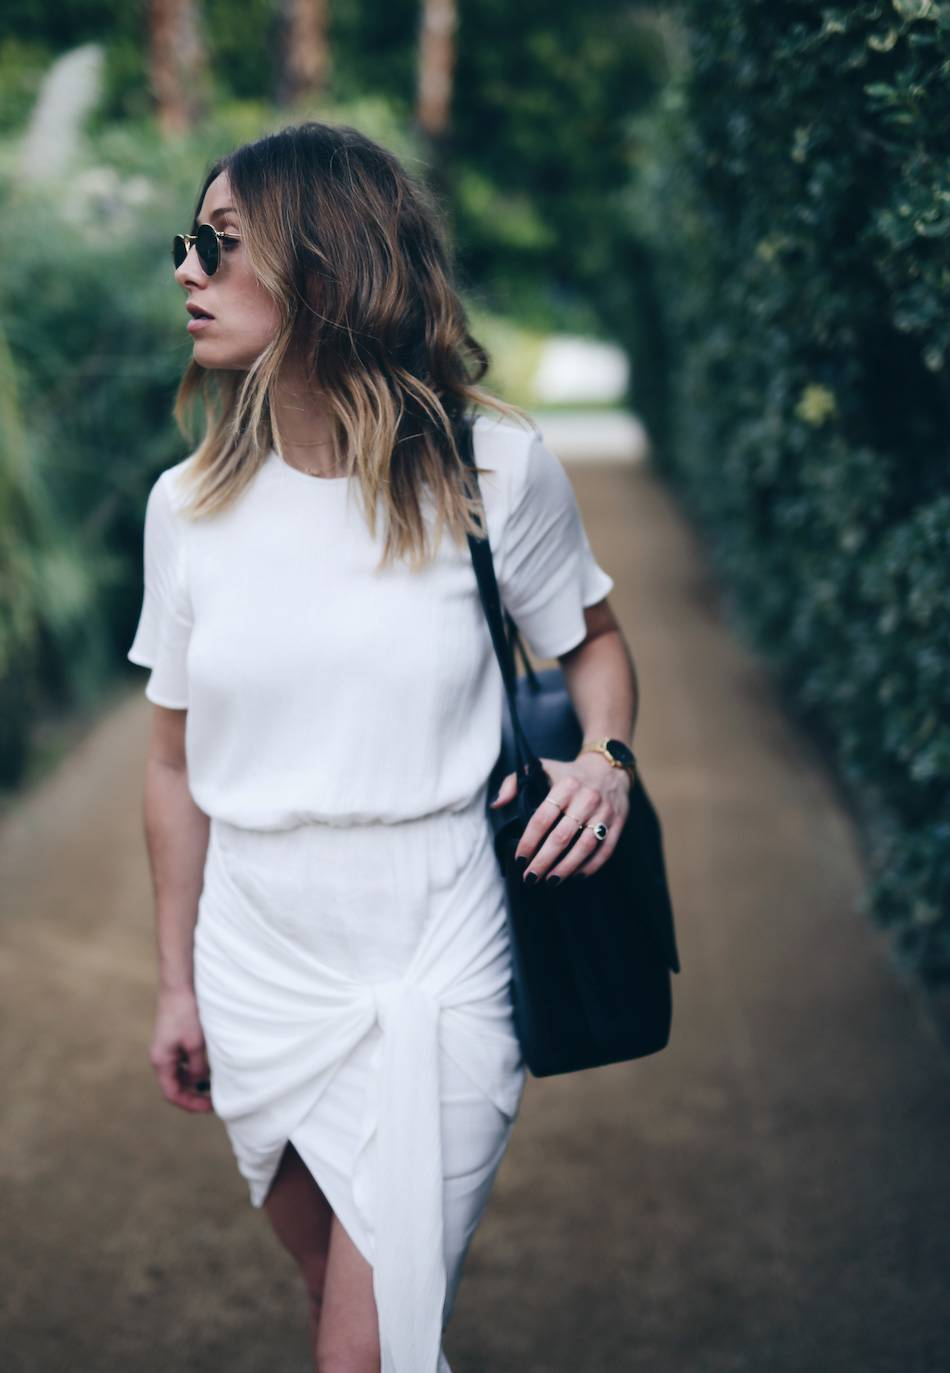 Style-and-beauty-blogger-Jill-Lansky-of-The-August-Diaries-in-white-wrap-Stylestalker-dress-